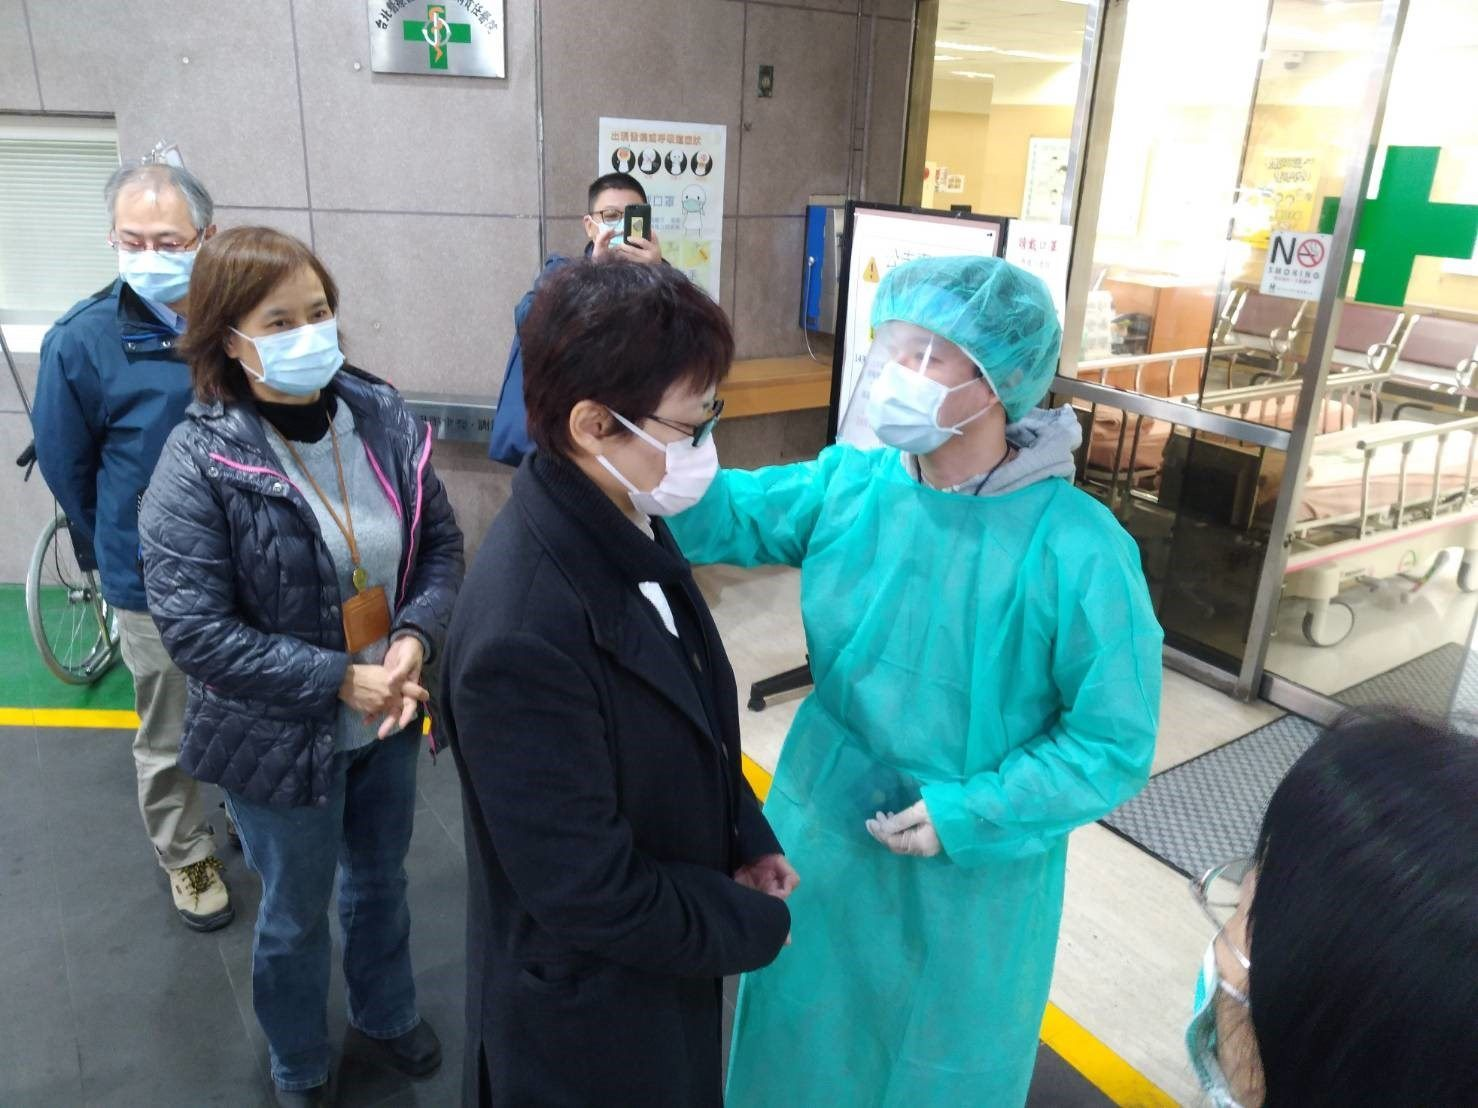 DOL Commissioner Chen Visits Local Hospital